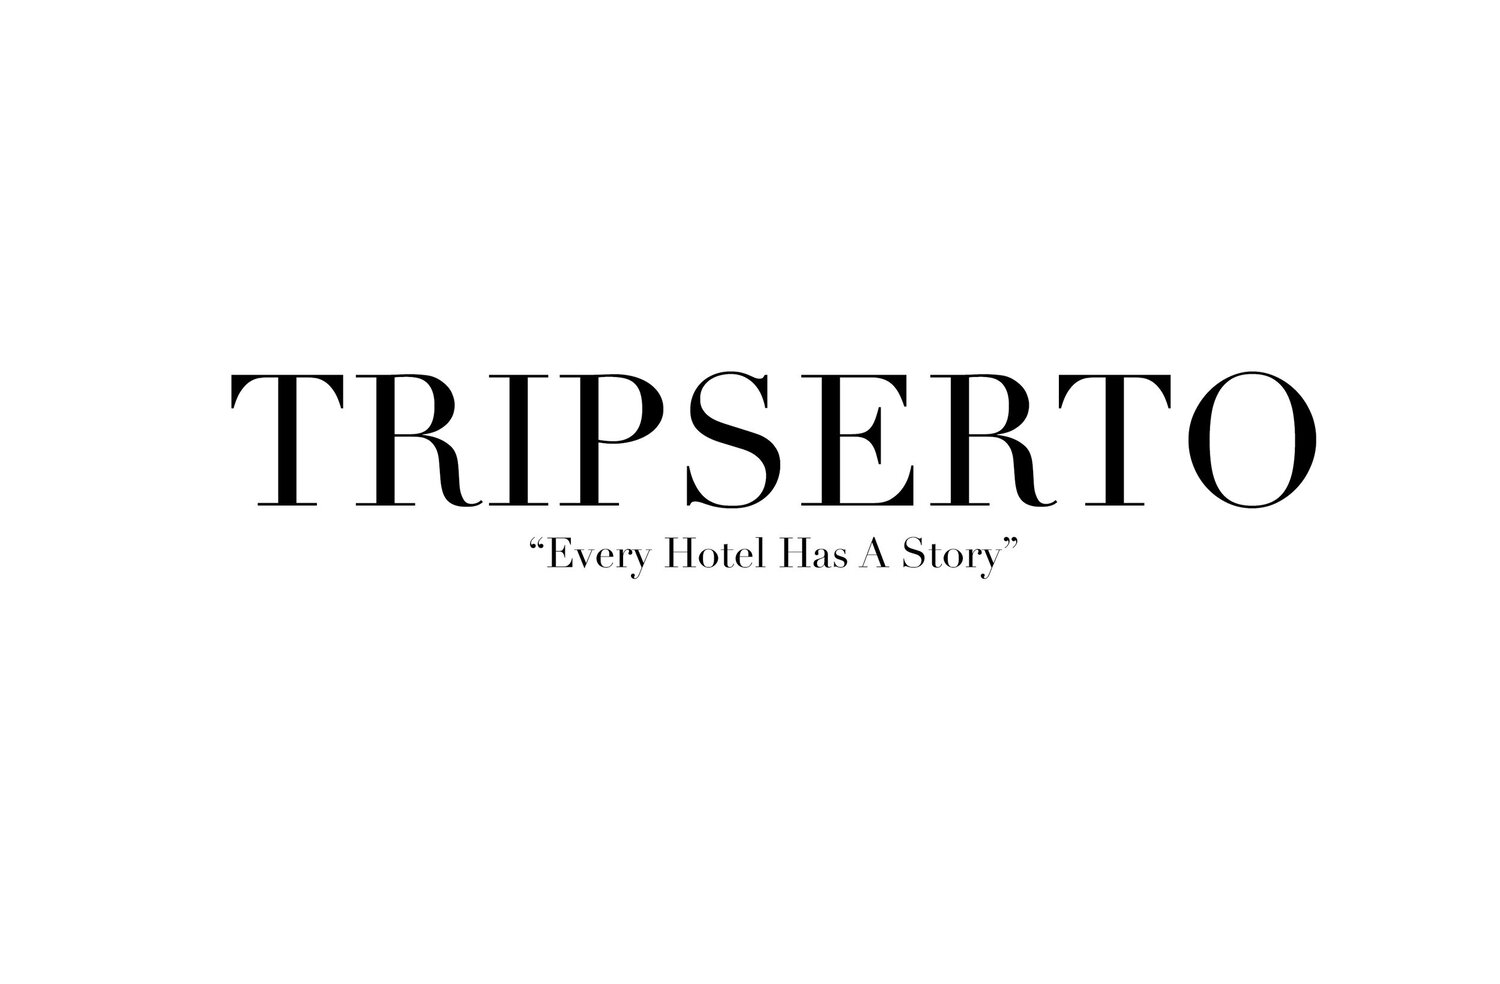 Tripserto - Every Hotel Has A Story